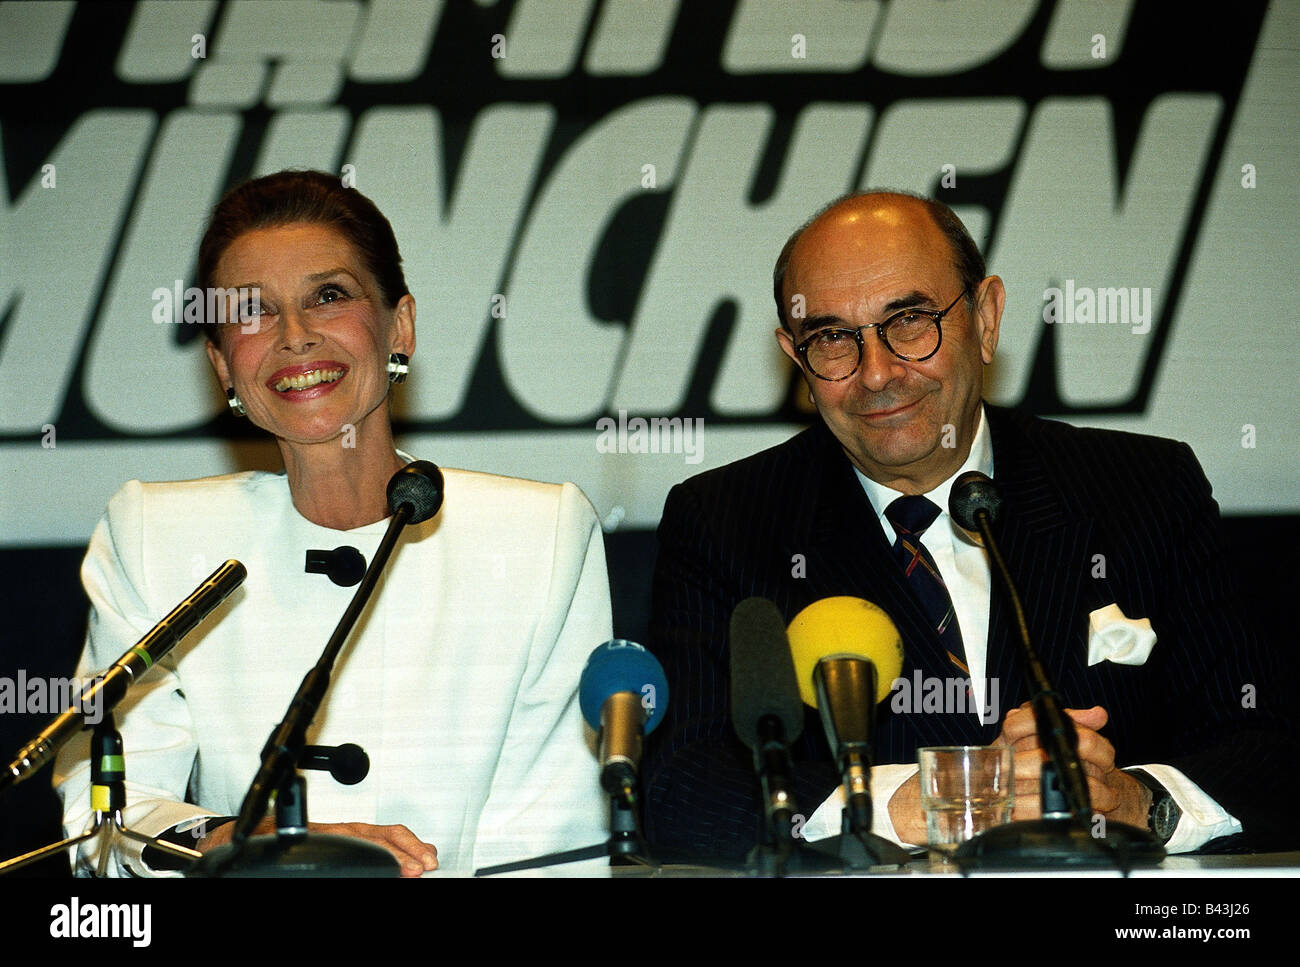 Donen, Stanley, * 24.4.1924, American director, with Audrey Hepburn, during interview, at opening of 10th movie - Stock Image